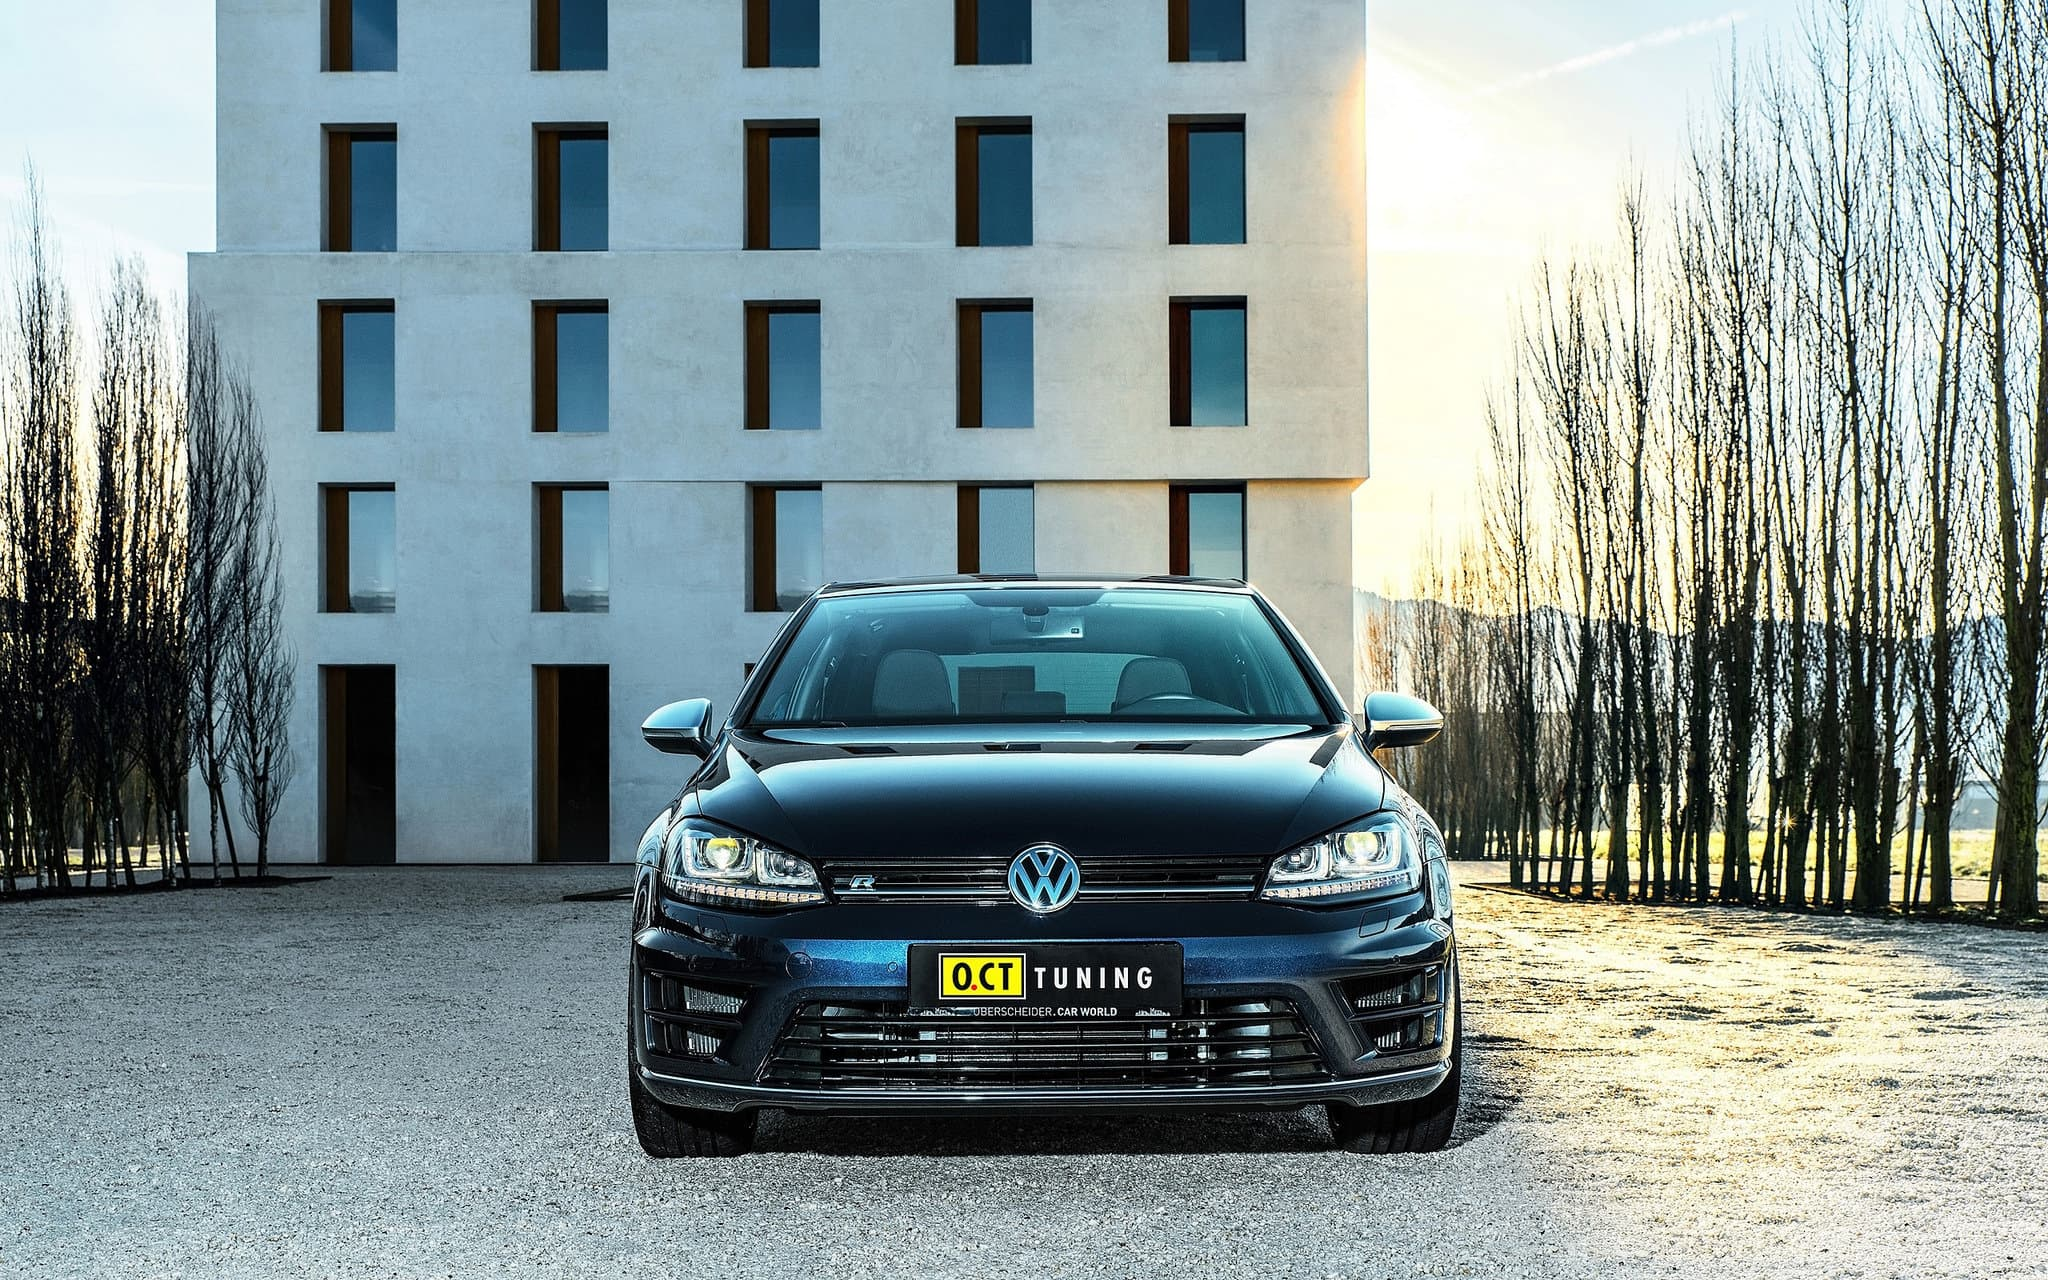 Tuning Volkswagen Golf 7 R 2016 O.C.T Background HD